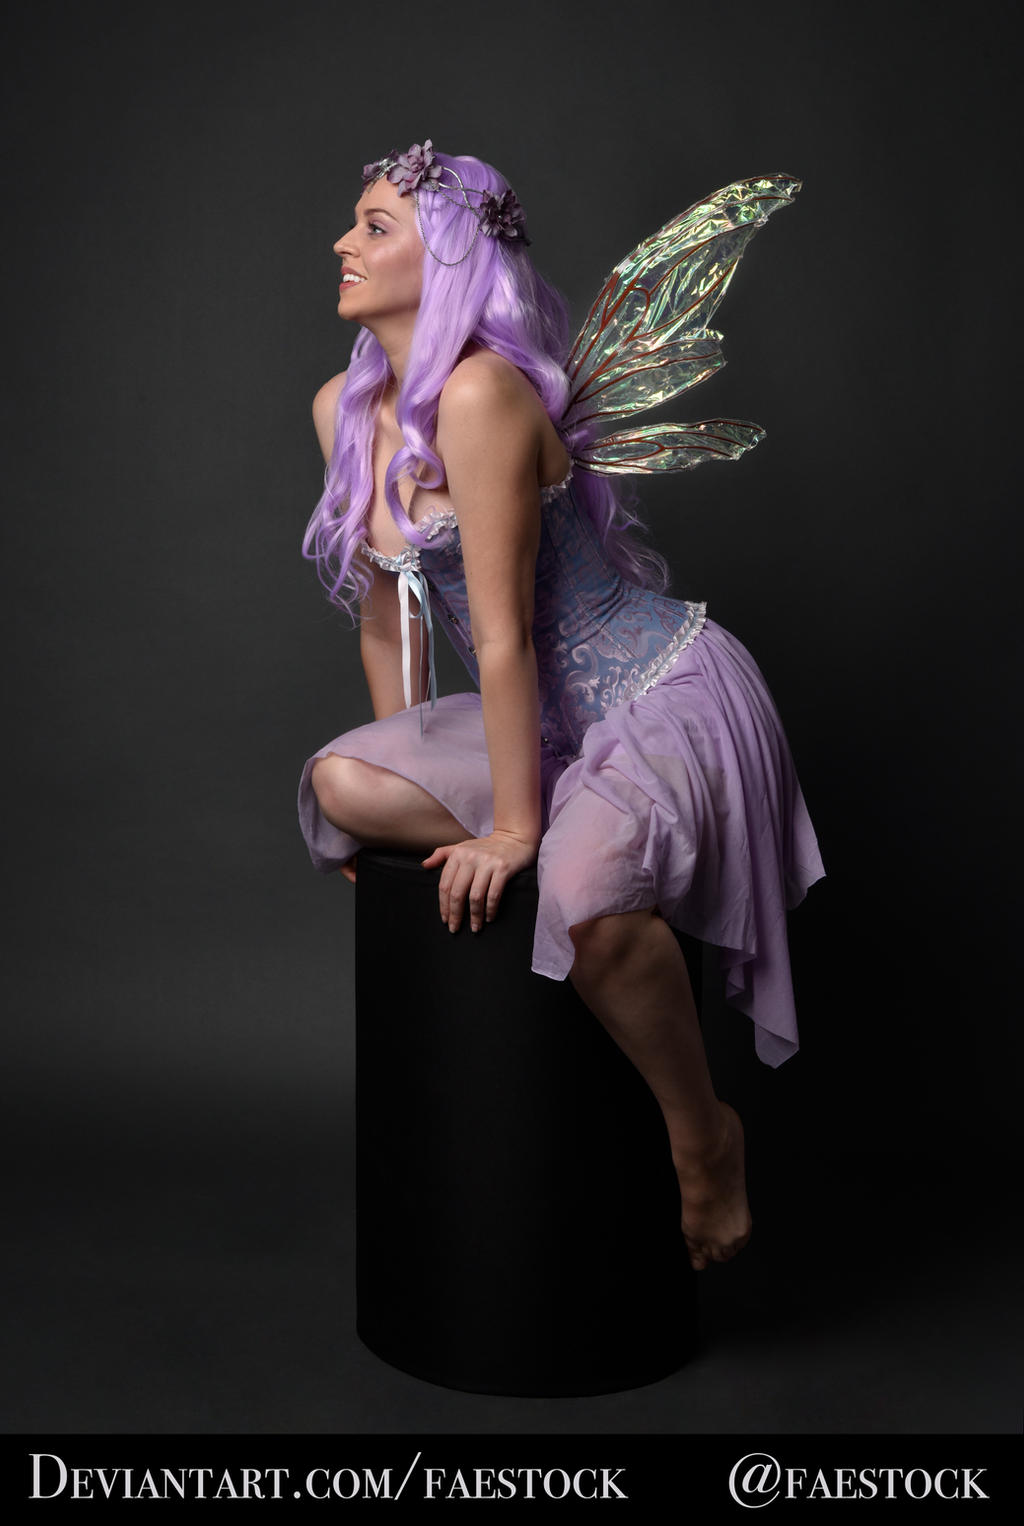 Purple Fairy - Full length pose reference photo 2